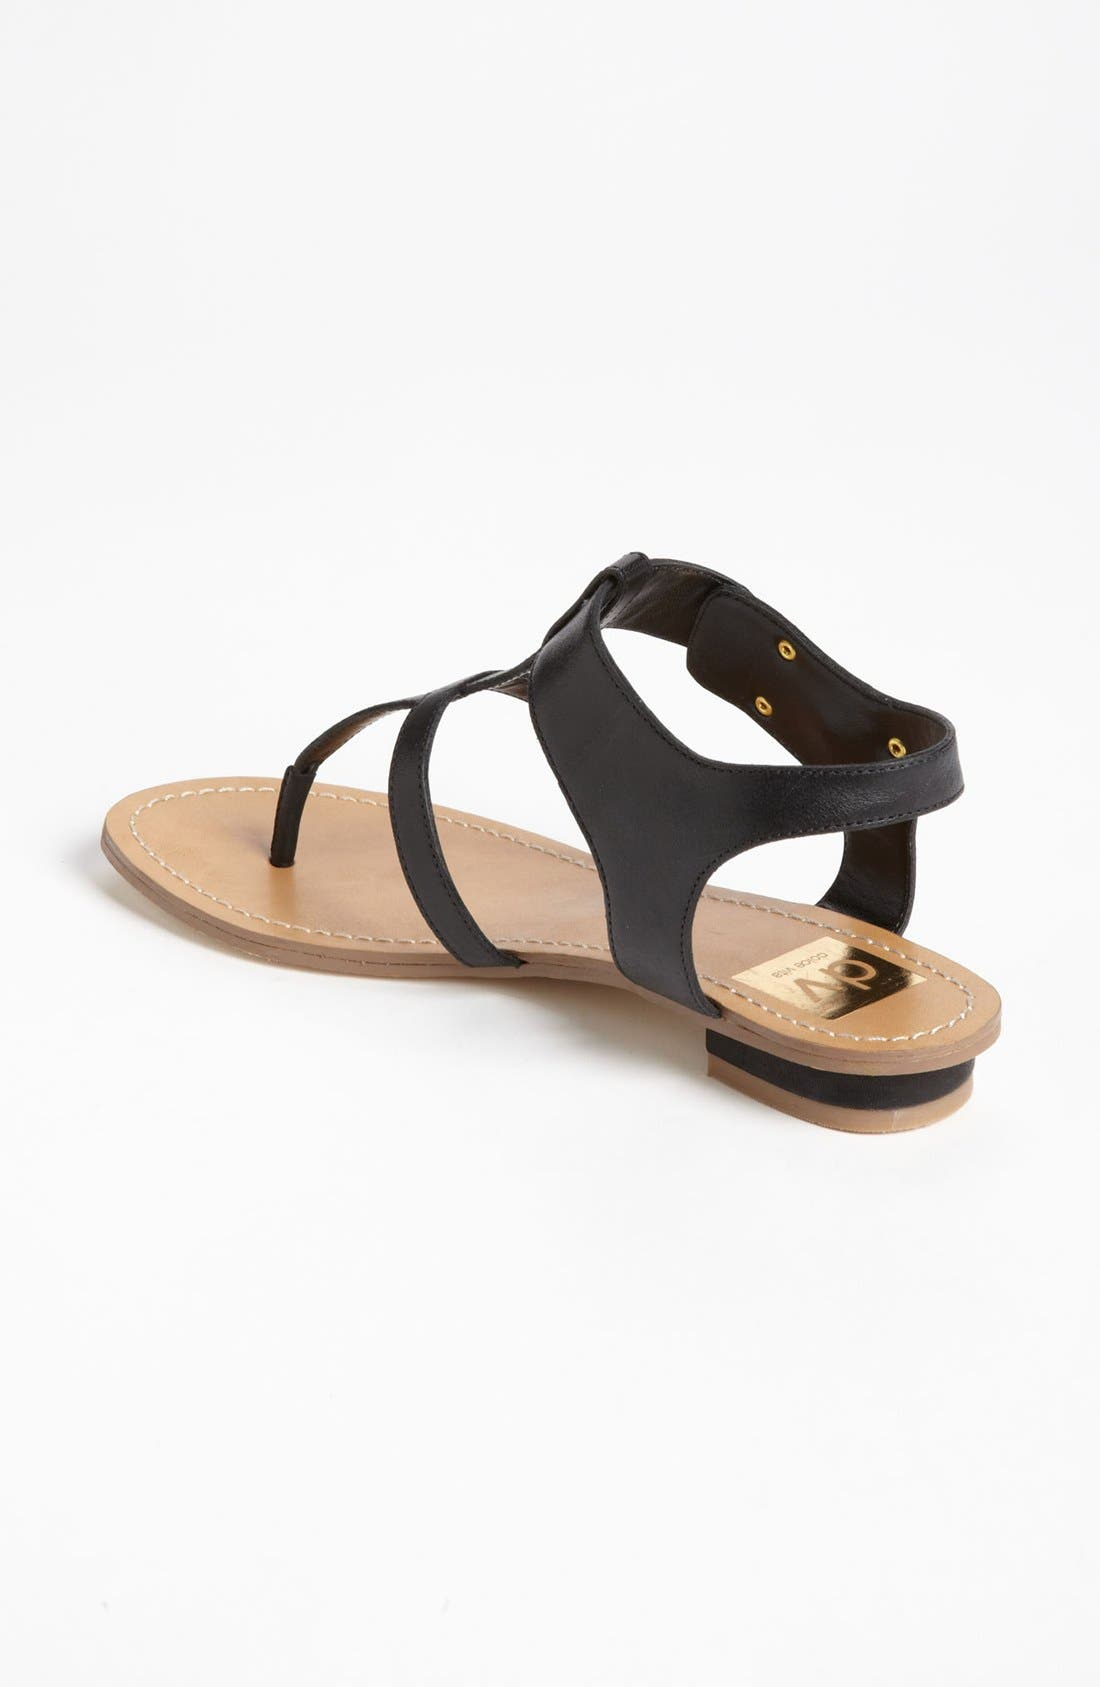 DV by Dolce Vita 'Hani' Sandal,                             Alternate thumbnail 2, color,                             Black